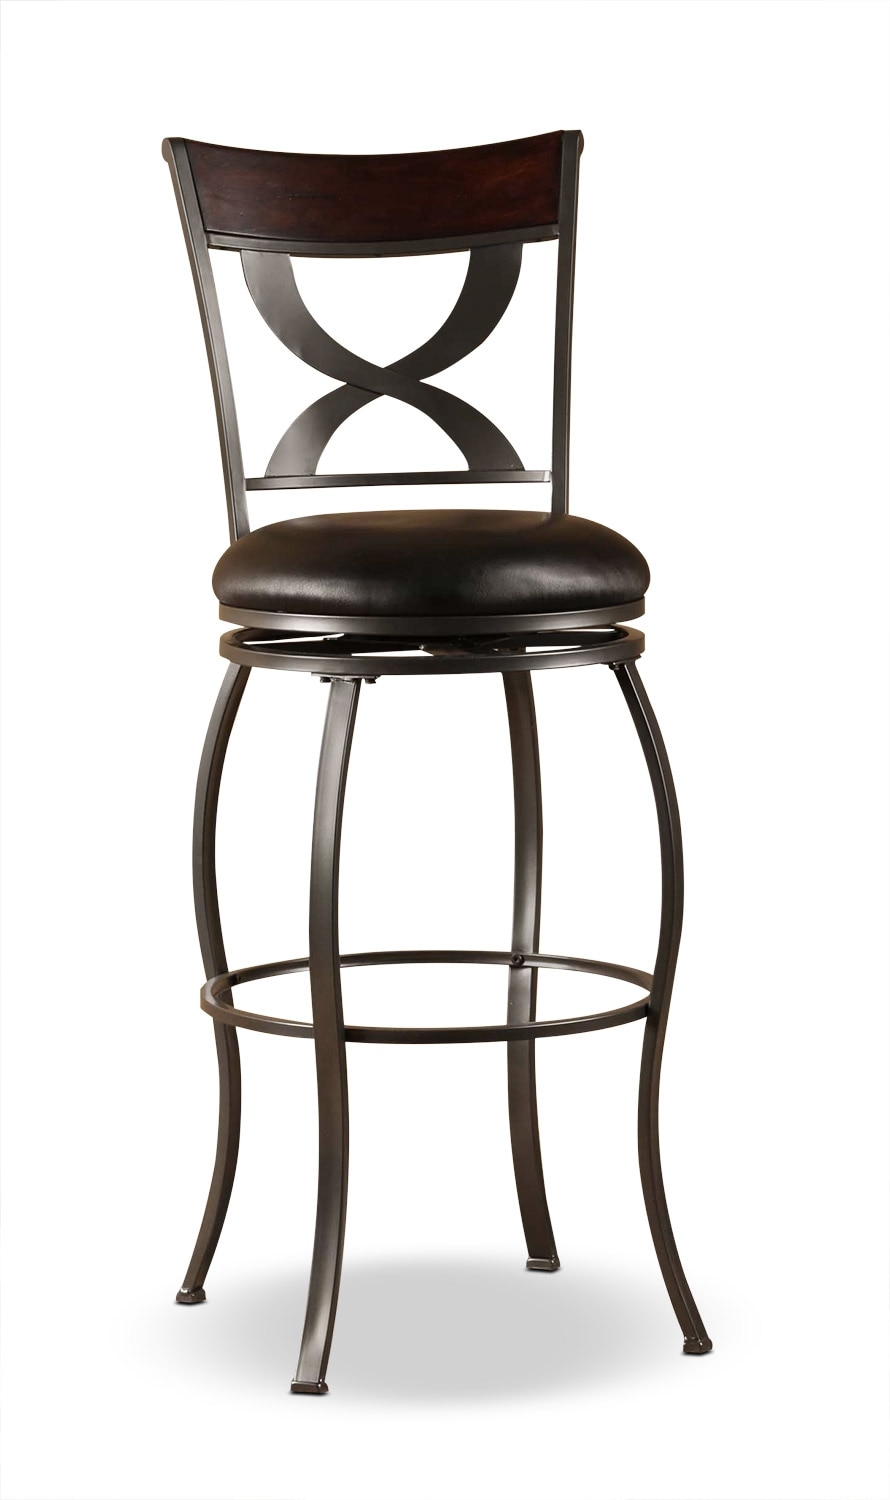 Stockport counter height swivel stool united furniture for Counter height swivel bar stools